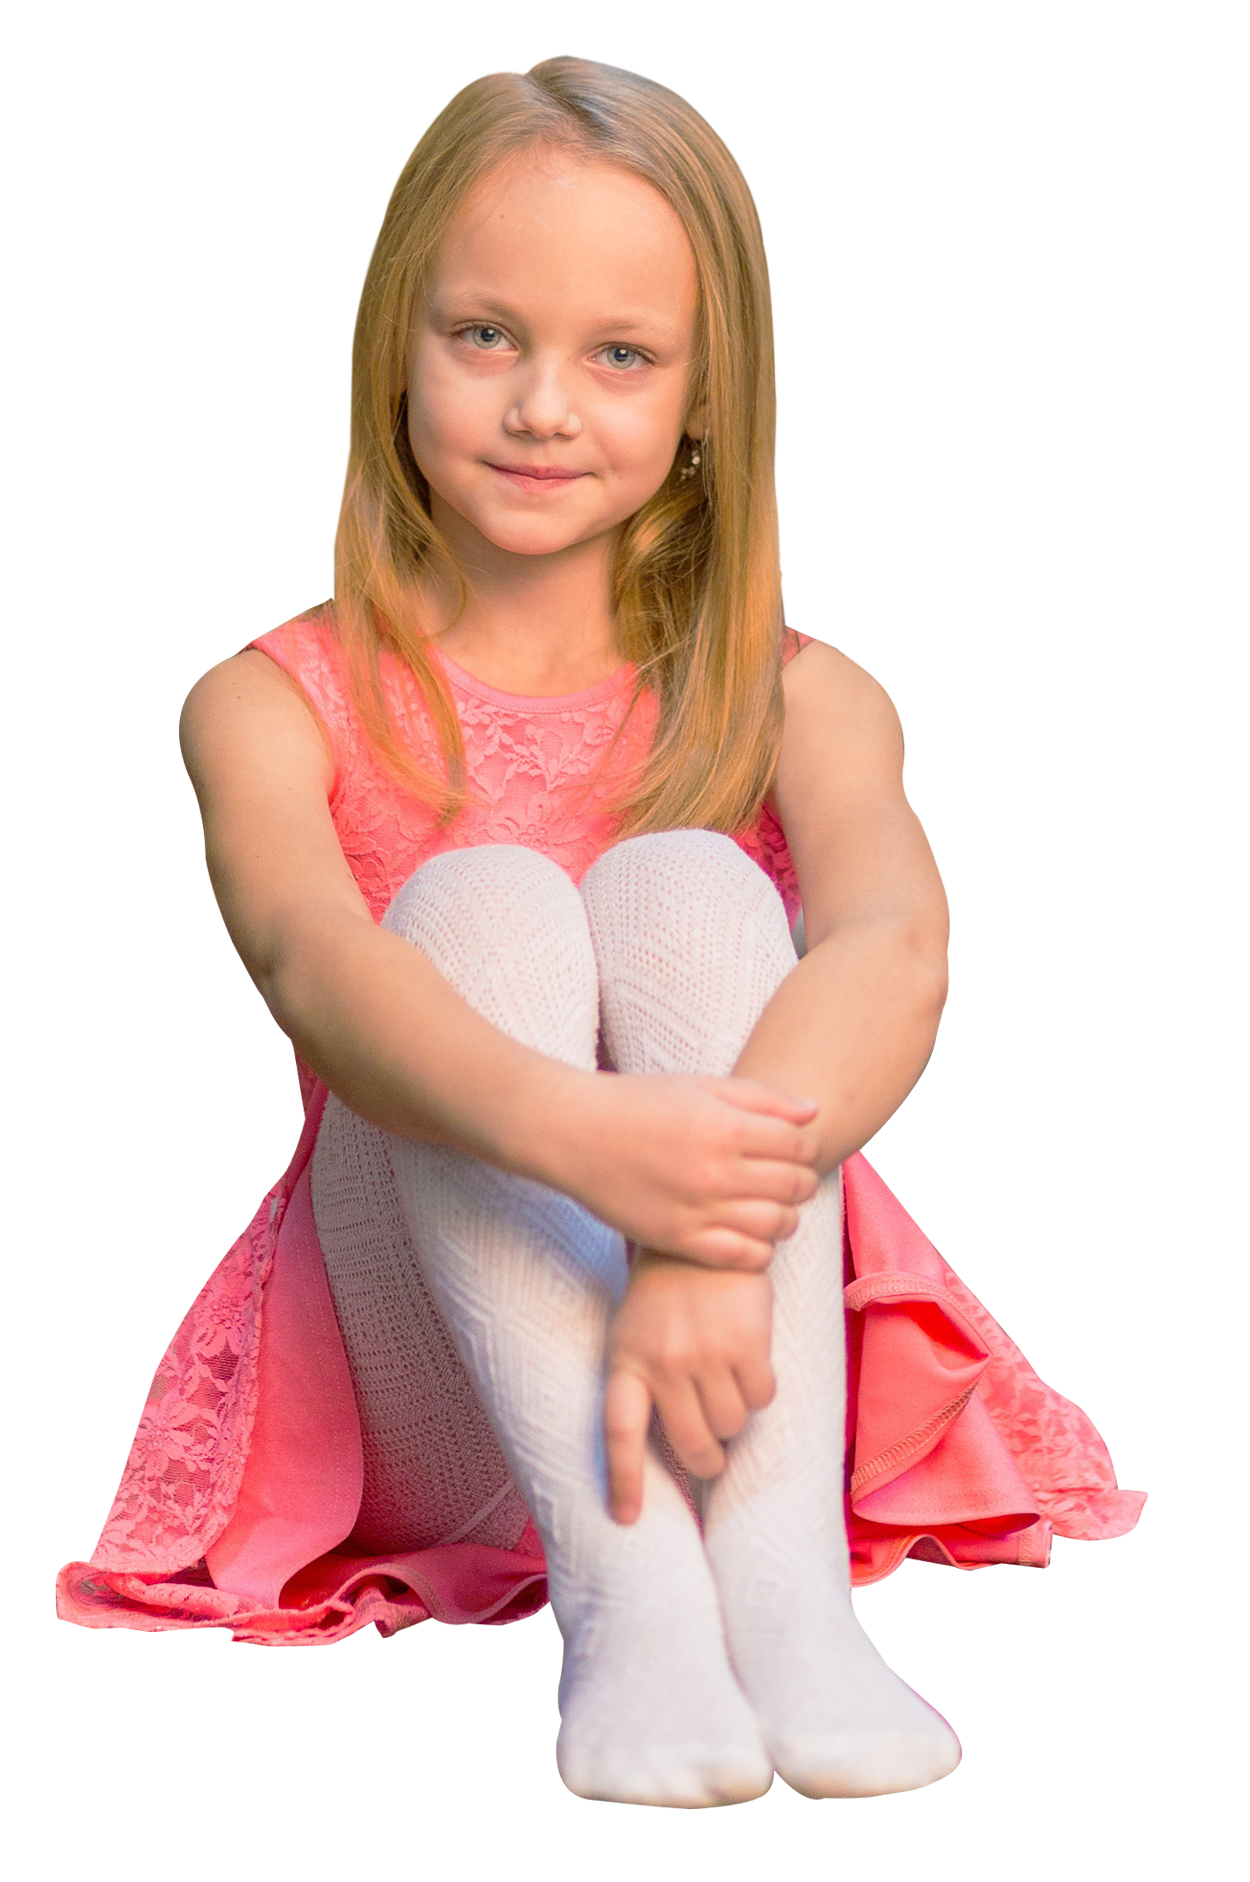 Person sitting on the floor png. Images pngpix pretty little